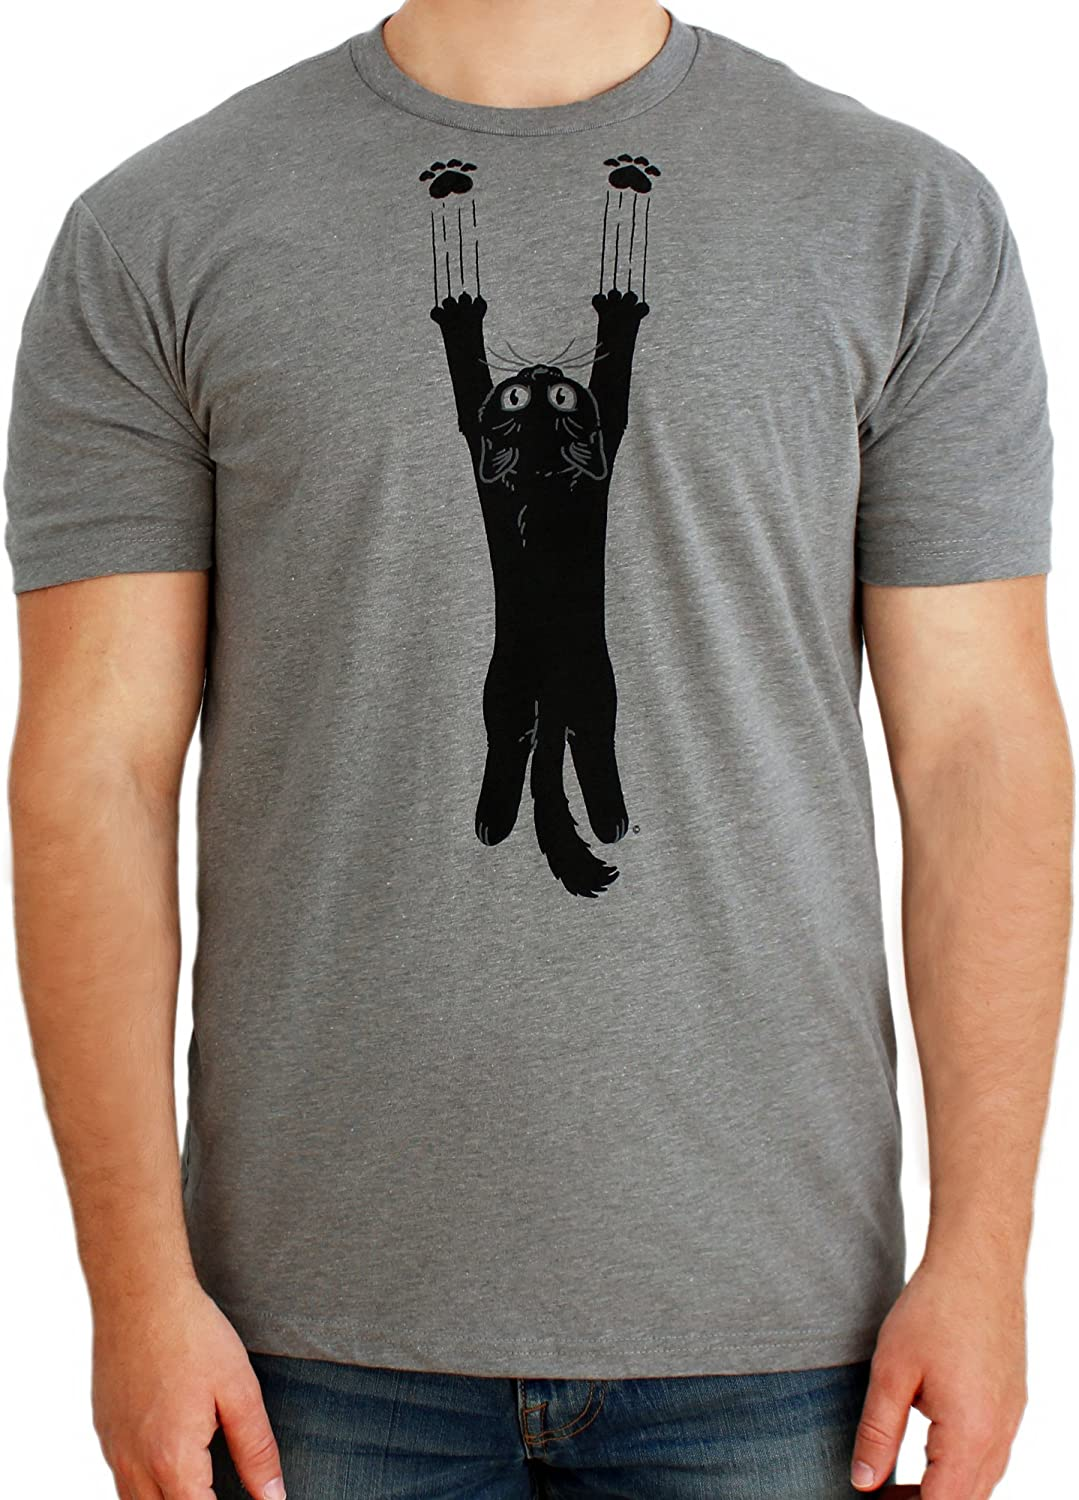 Paw Addict Funny Cat Shirt Black Cute Kitty Laughing Game Cat T-Shirt Unisex Novelty Tee for Men & Women